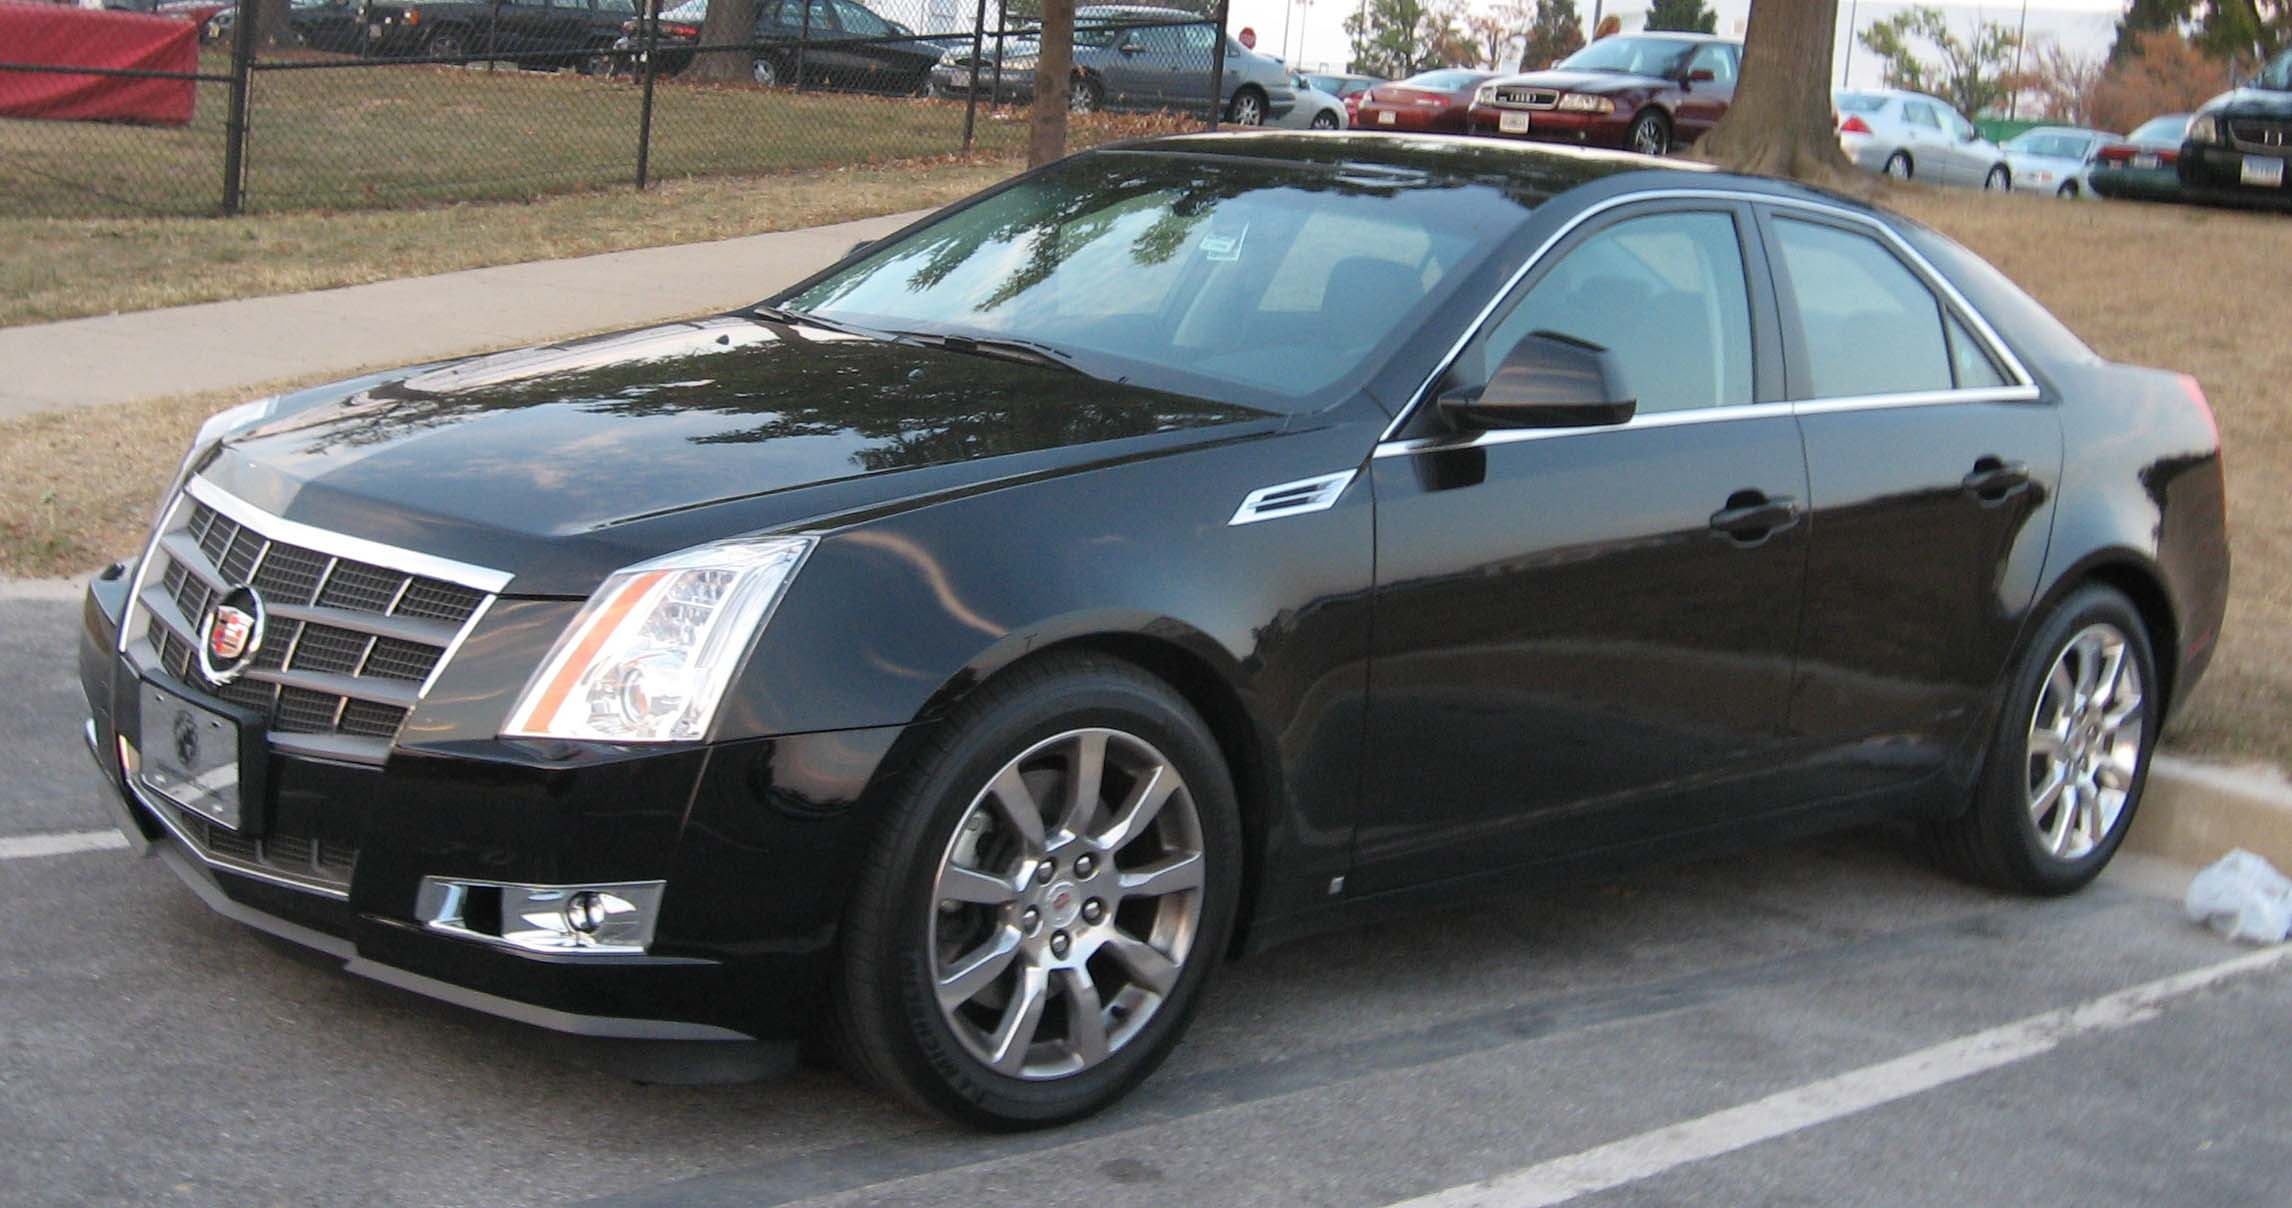 2008 Cadillac CTS - Information and photos - ZombieDrive